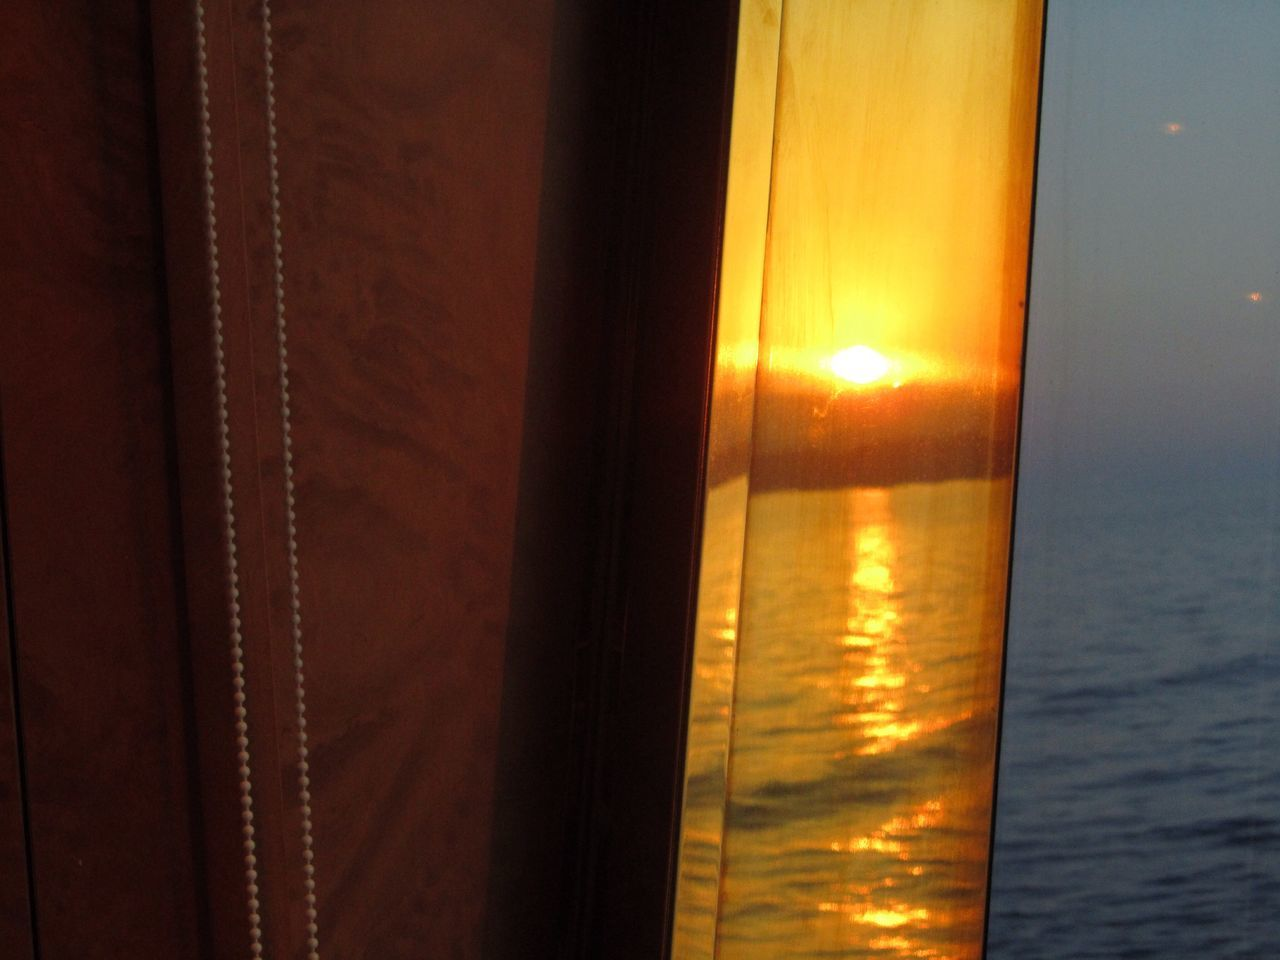 Sunset onboard m/s Fantasia outside Barcelona Taking Photos Things I Like Check This Out That's Me Relaxing 😀 Sunset Sunset_collection Seaset Sunset At Sea. Sunset At Sea, Cruise, Reflections Special👌shot EyeEm Best Shots Week On Eyeem Feel The Journey Cruise Ship 43 Golden Moments